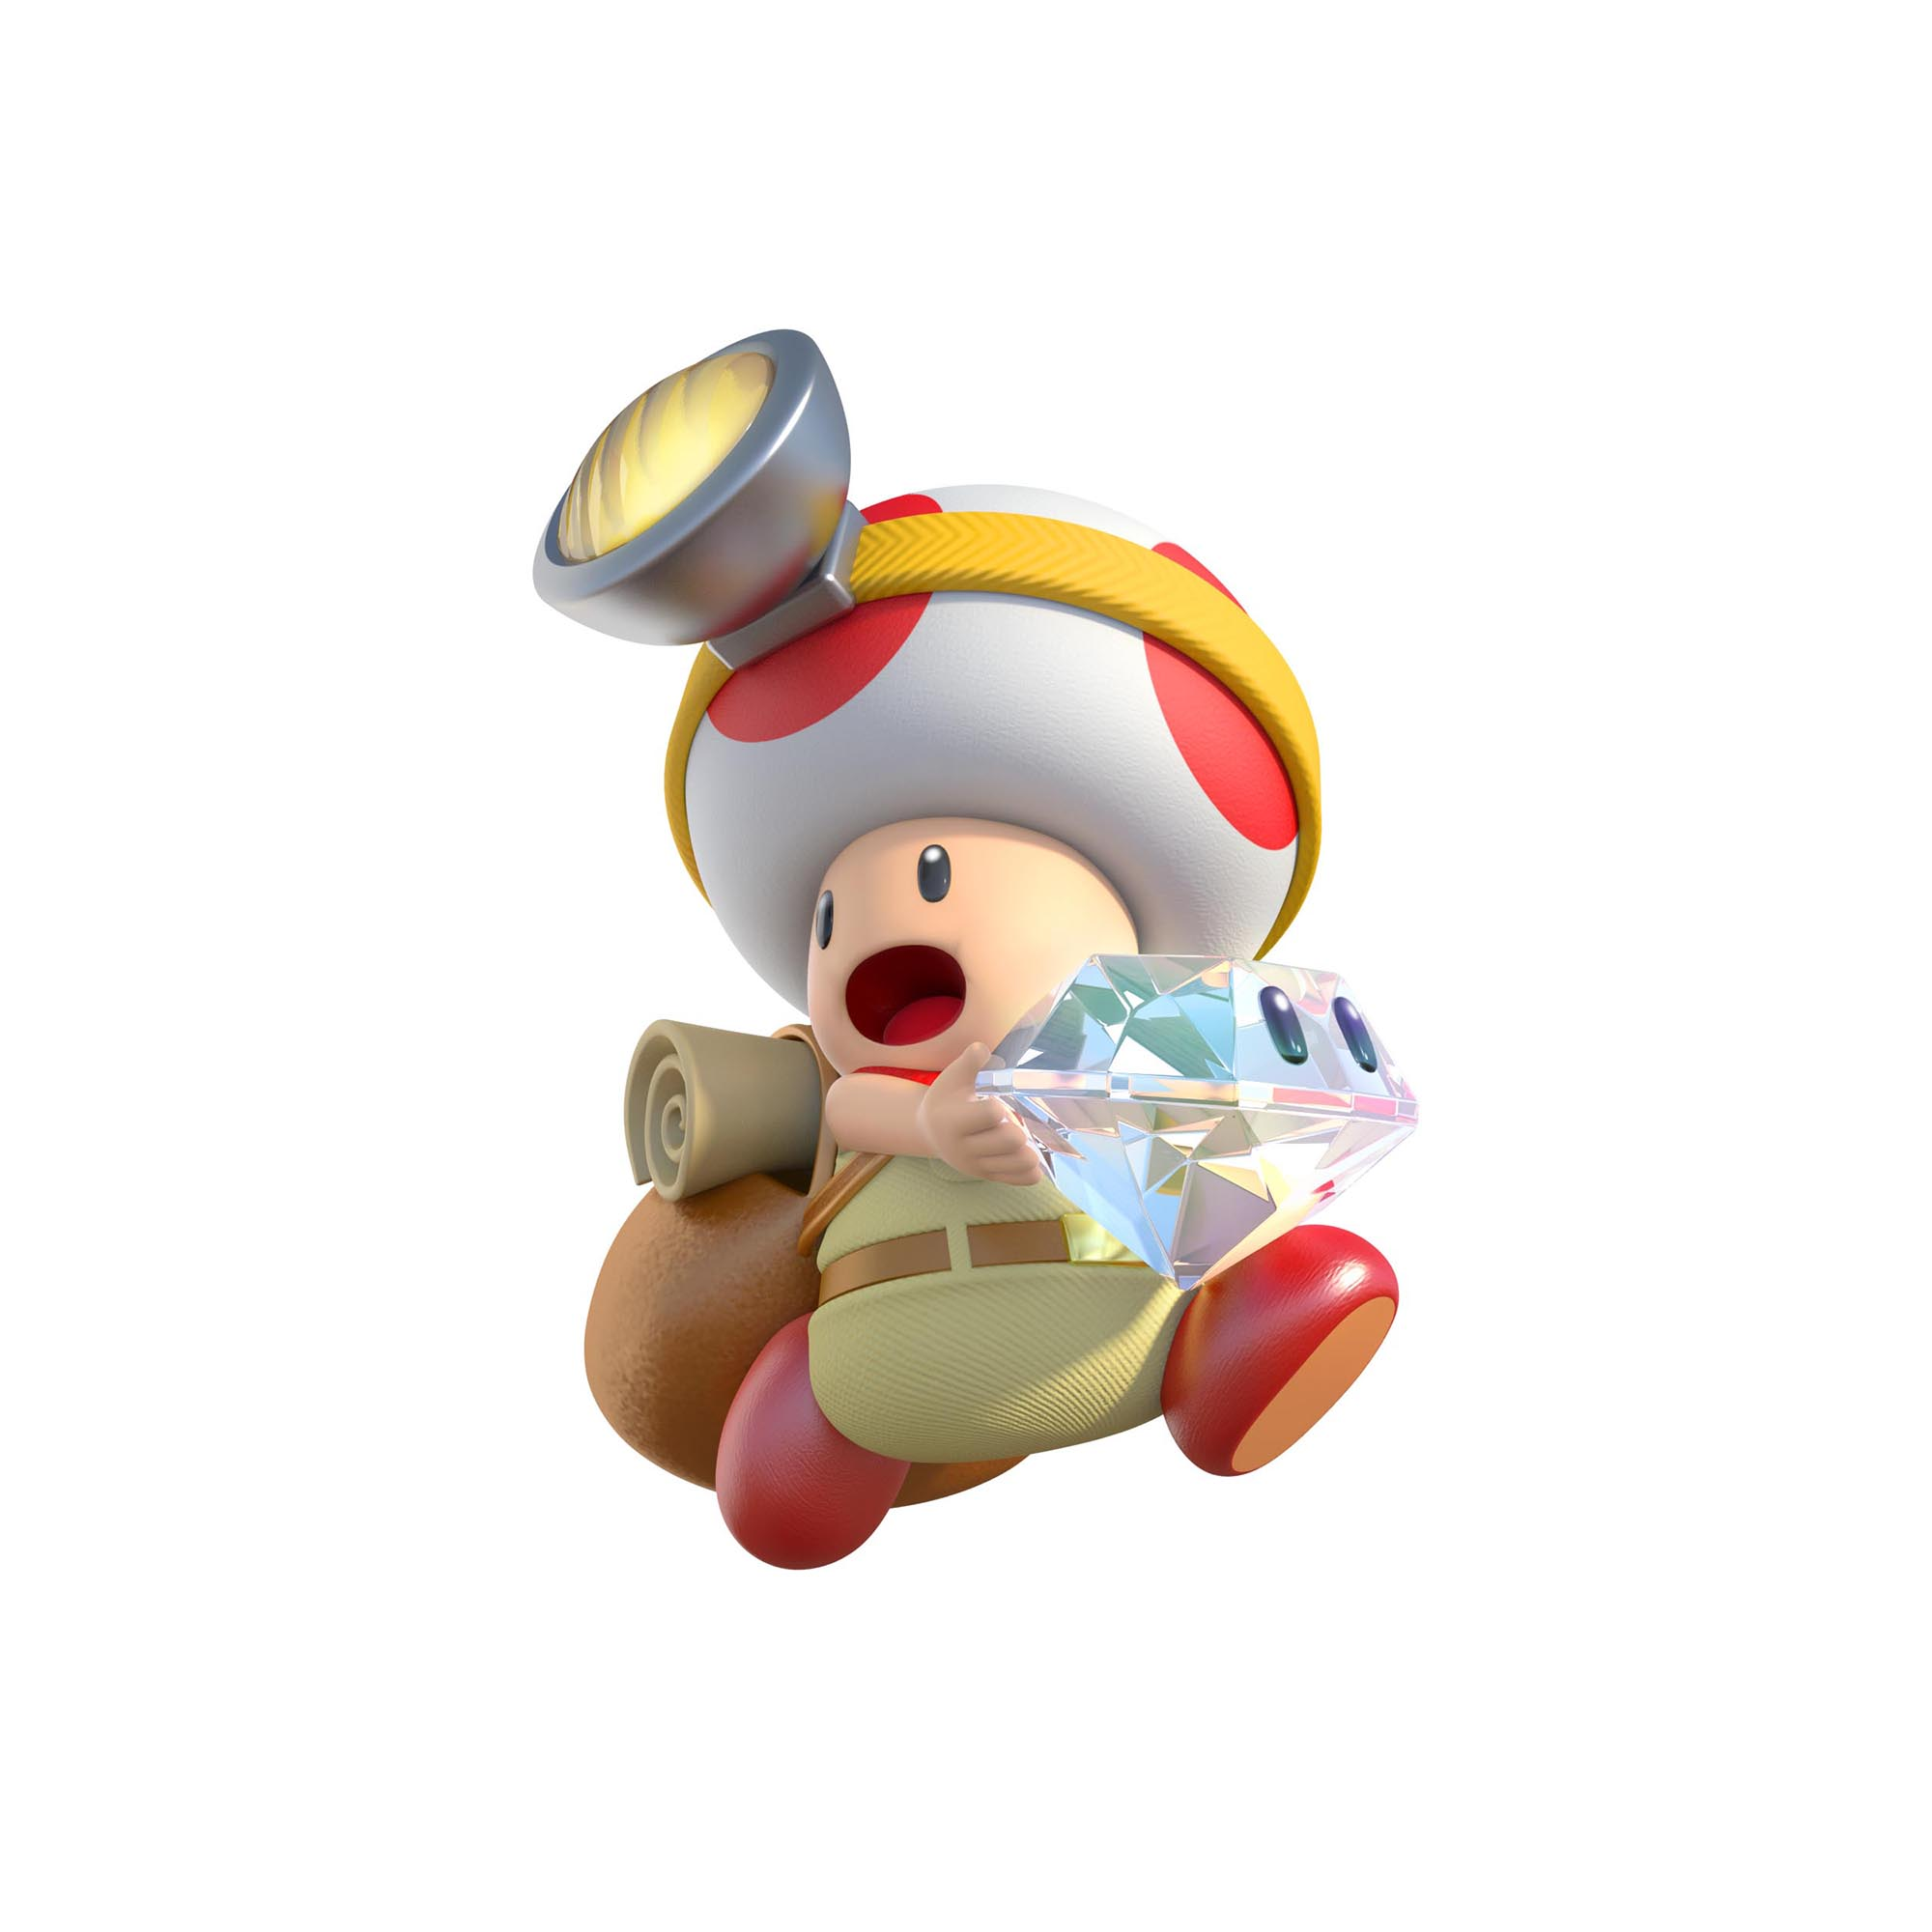 More artwork from the upcoming captain toad treasure tracker has